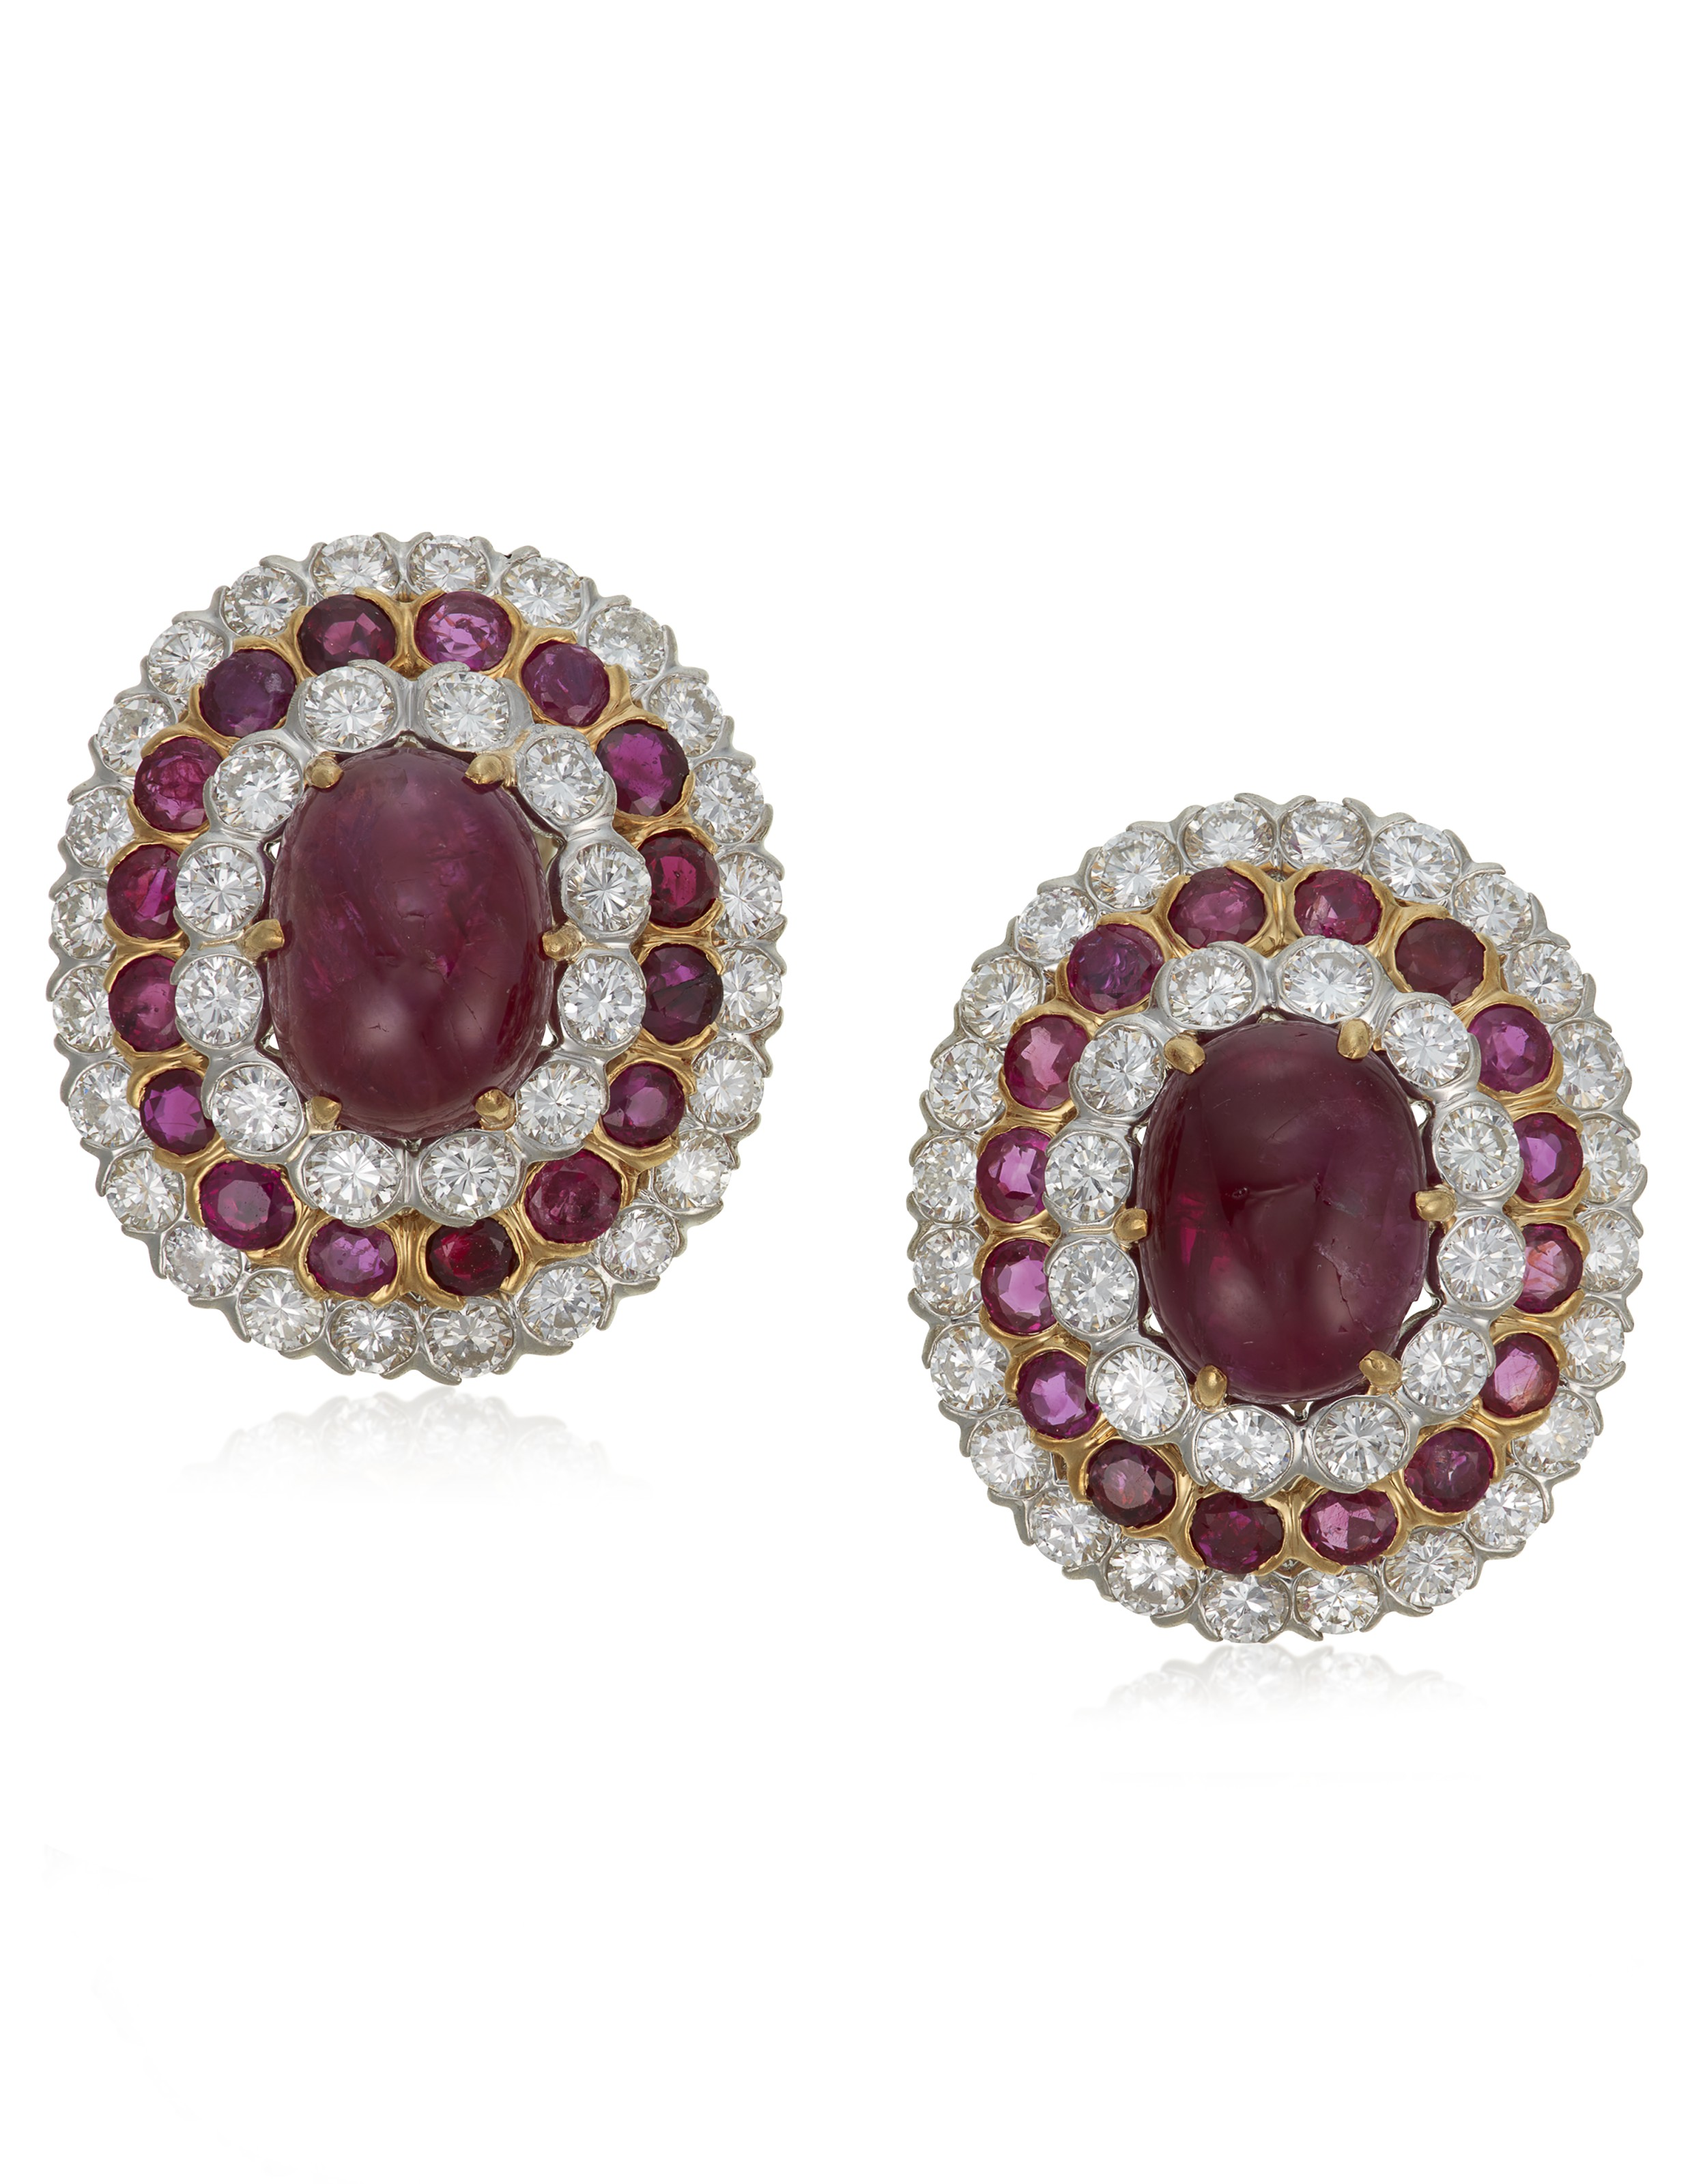 Ruby and diamond earrings, by David Webb. Sold for $12,500 on10 February 2021, Online